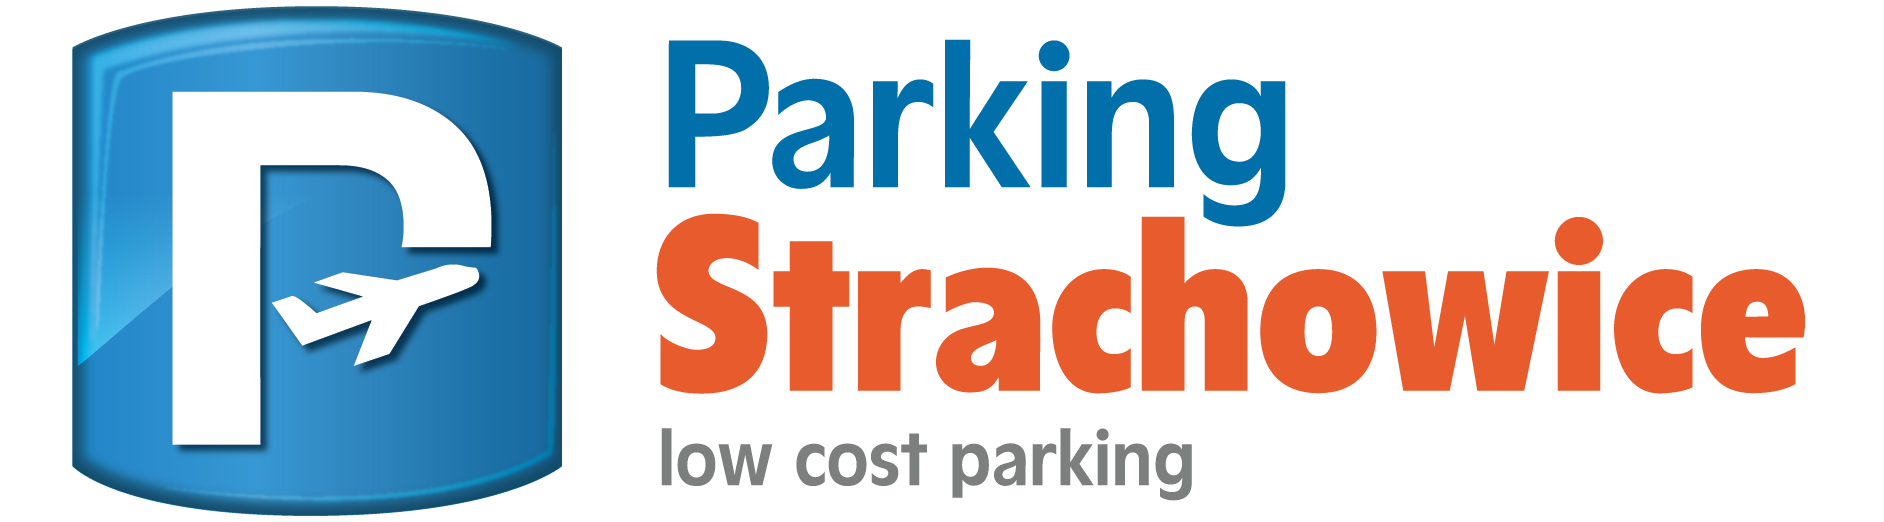 Parking Strachowice